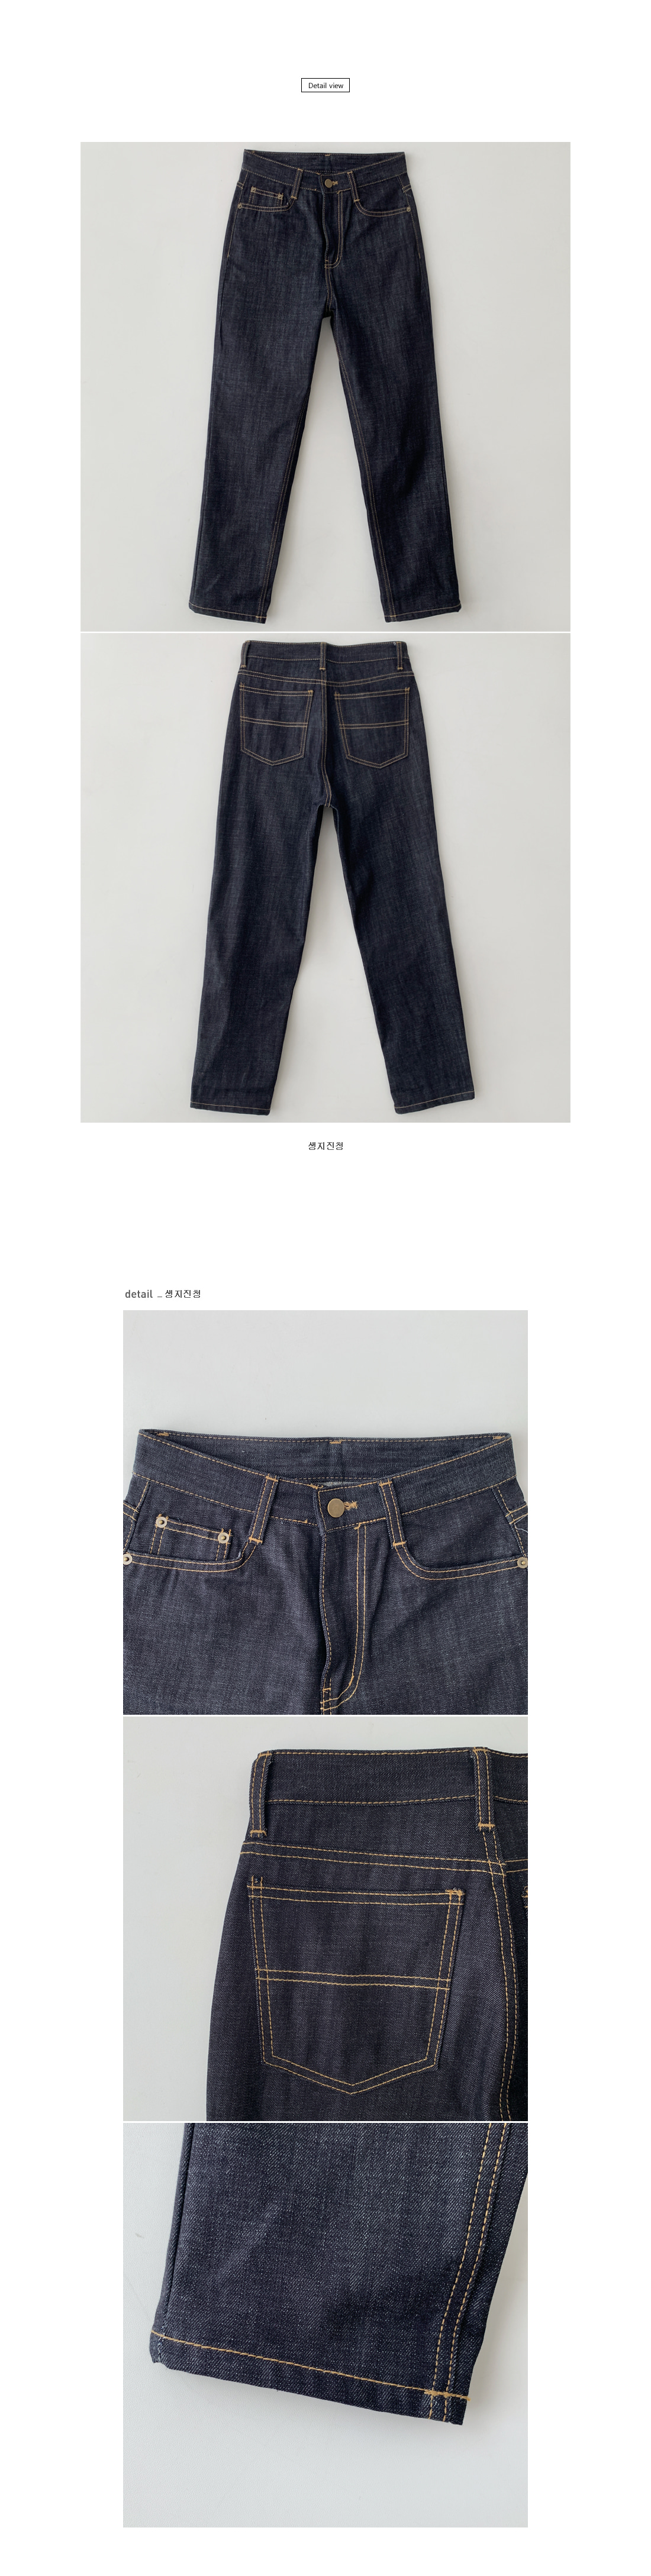 Jude Dough Boyfit Denim Pants